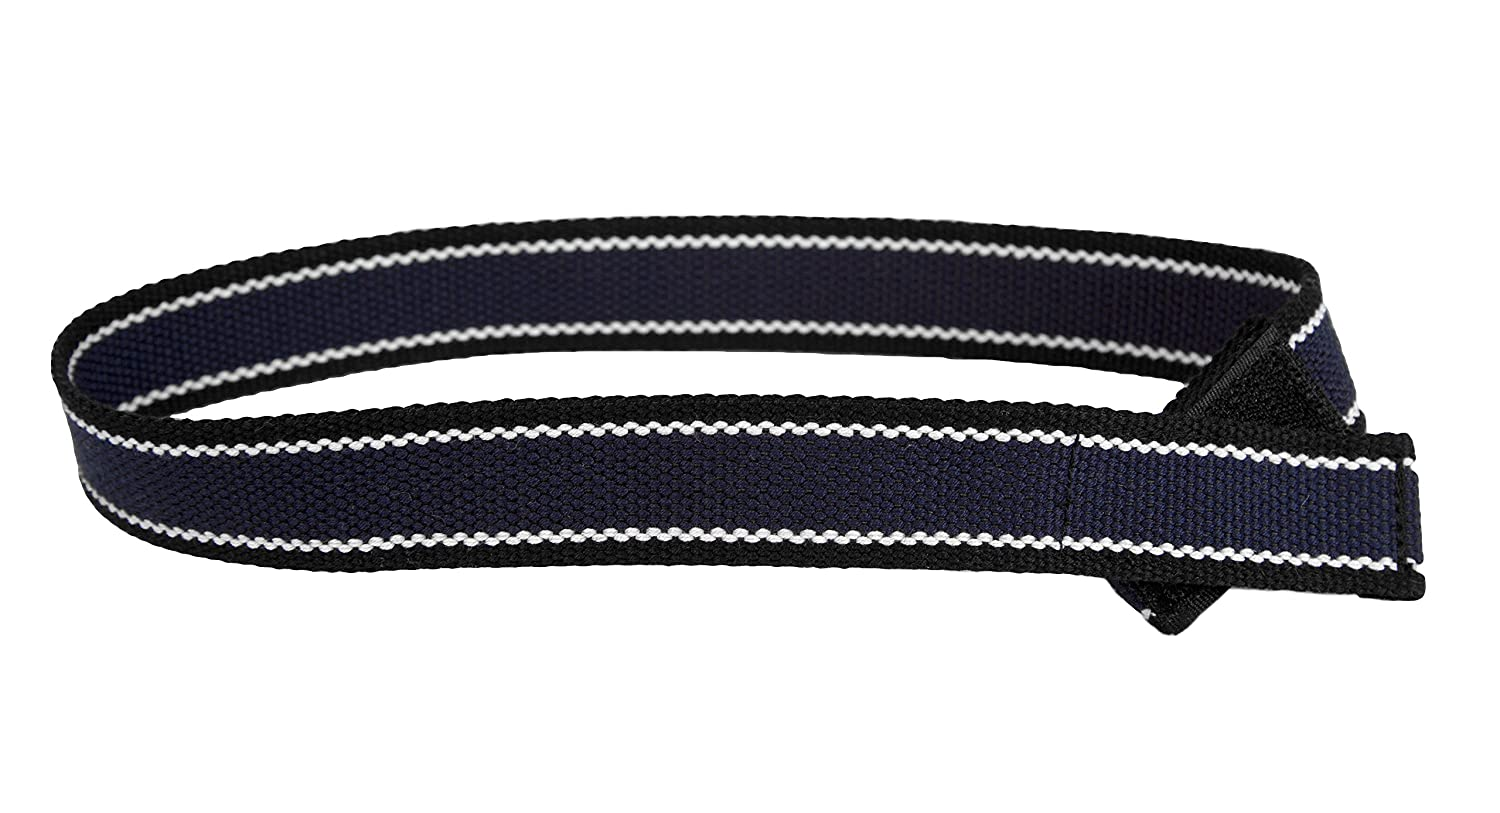 Myself Belts- Easy Belt with One Handed Closure for Little Boys Navy/Black Webbing